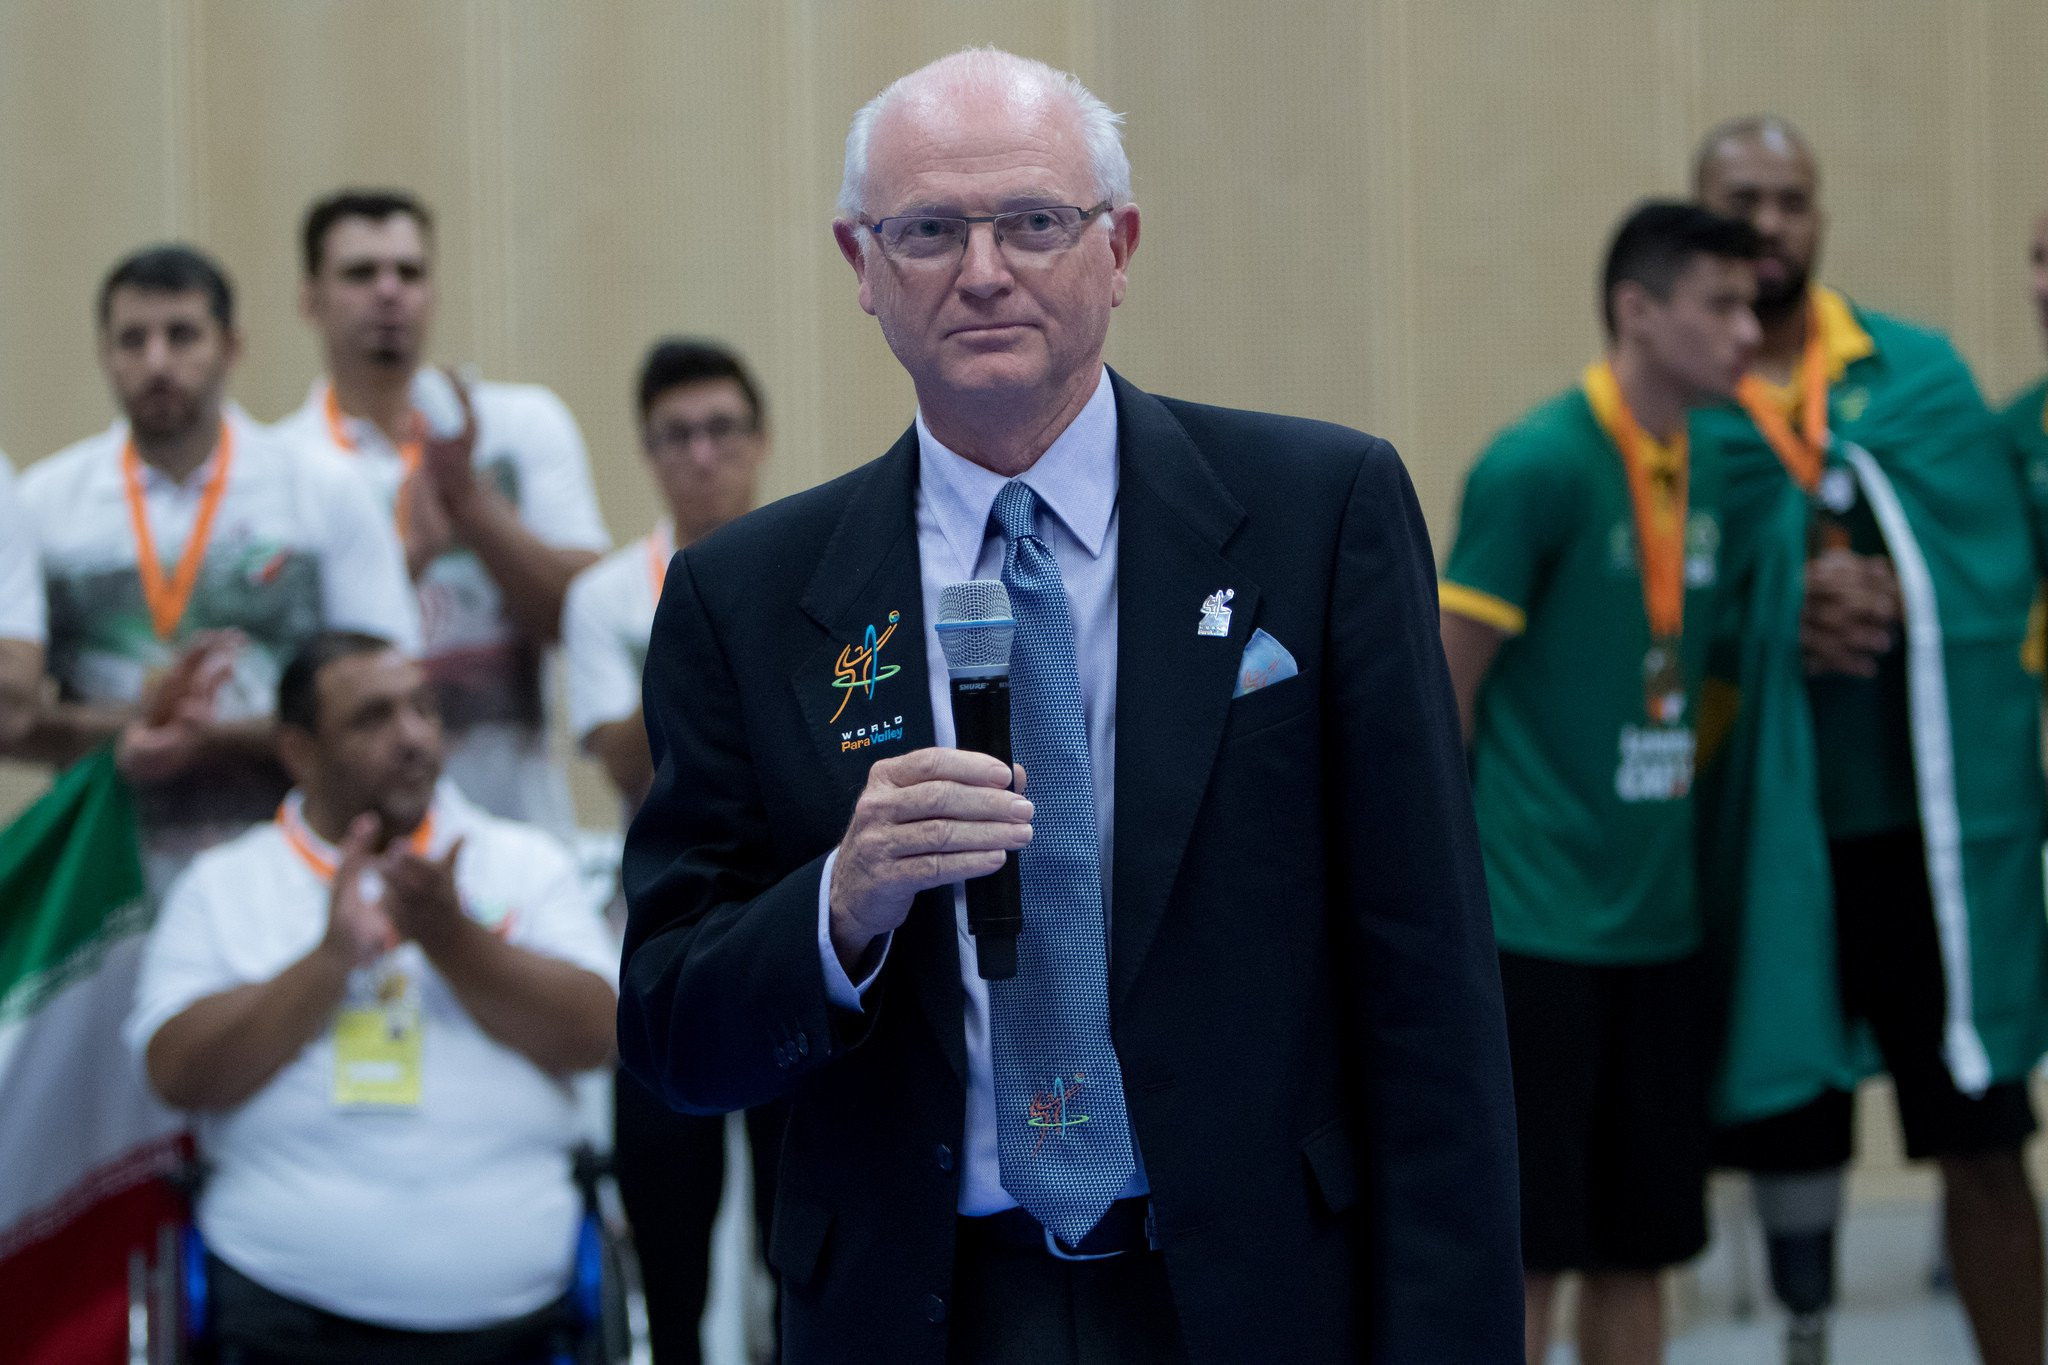 World ParaVolley President Barry Couzner said last year that momentum is building for a bid to include beach volleyball at the Los Angeles 2028 Paralympic Games ©World Para Volley